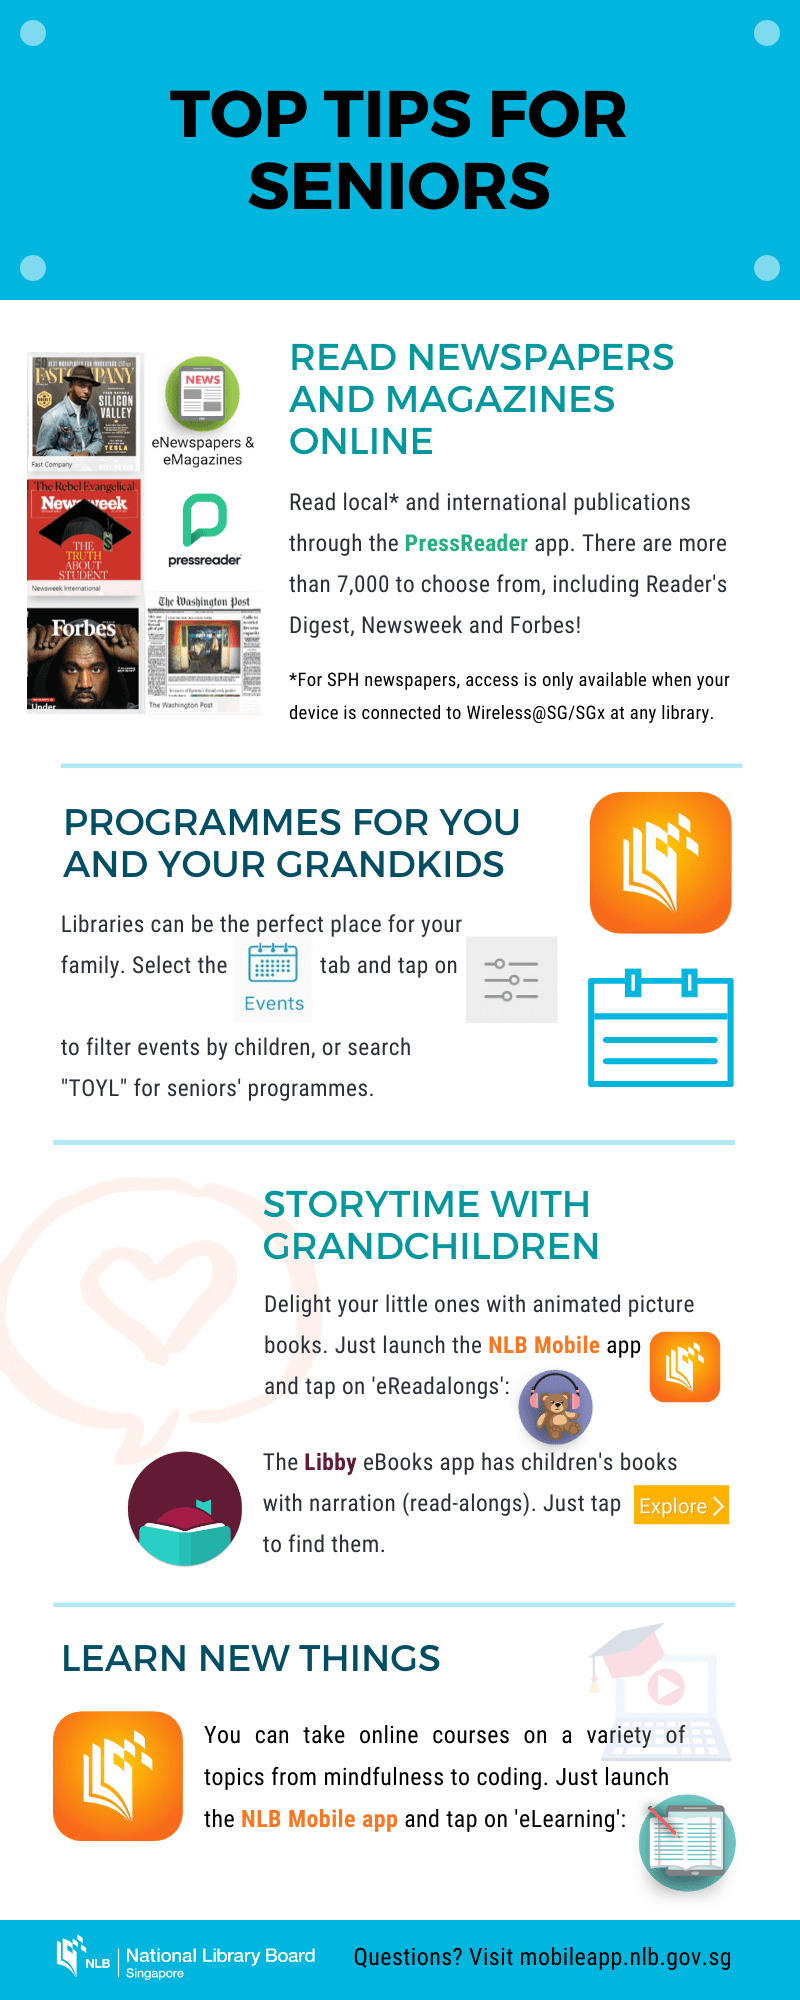 An infographic featuring top tips for seniors on NLB's digital collection, such as accessing eNewspapers and eMagazines, stories for grandchildren, eLearning and so on.